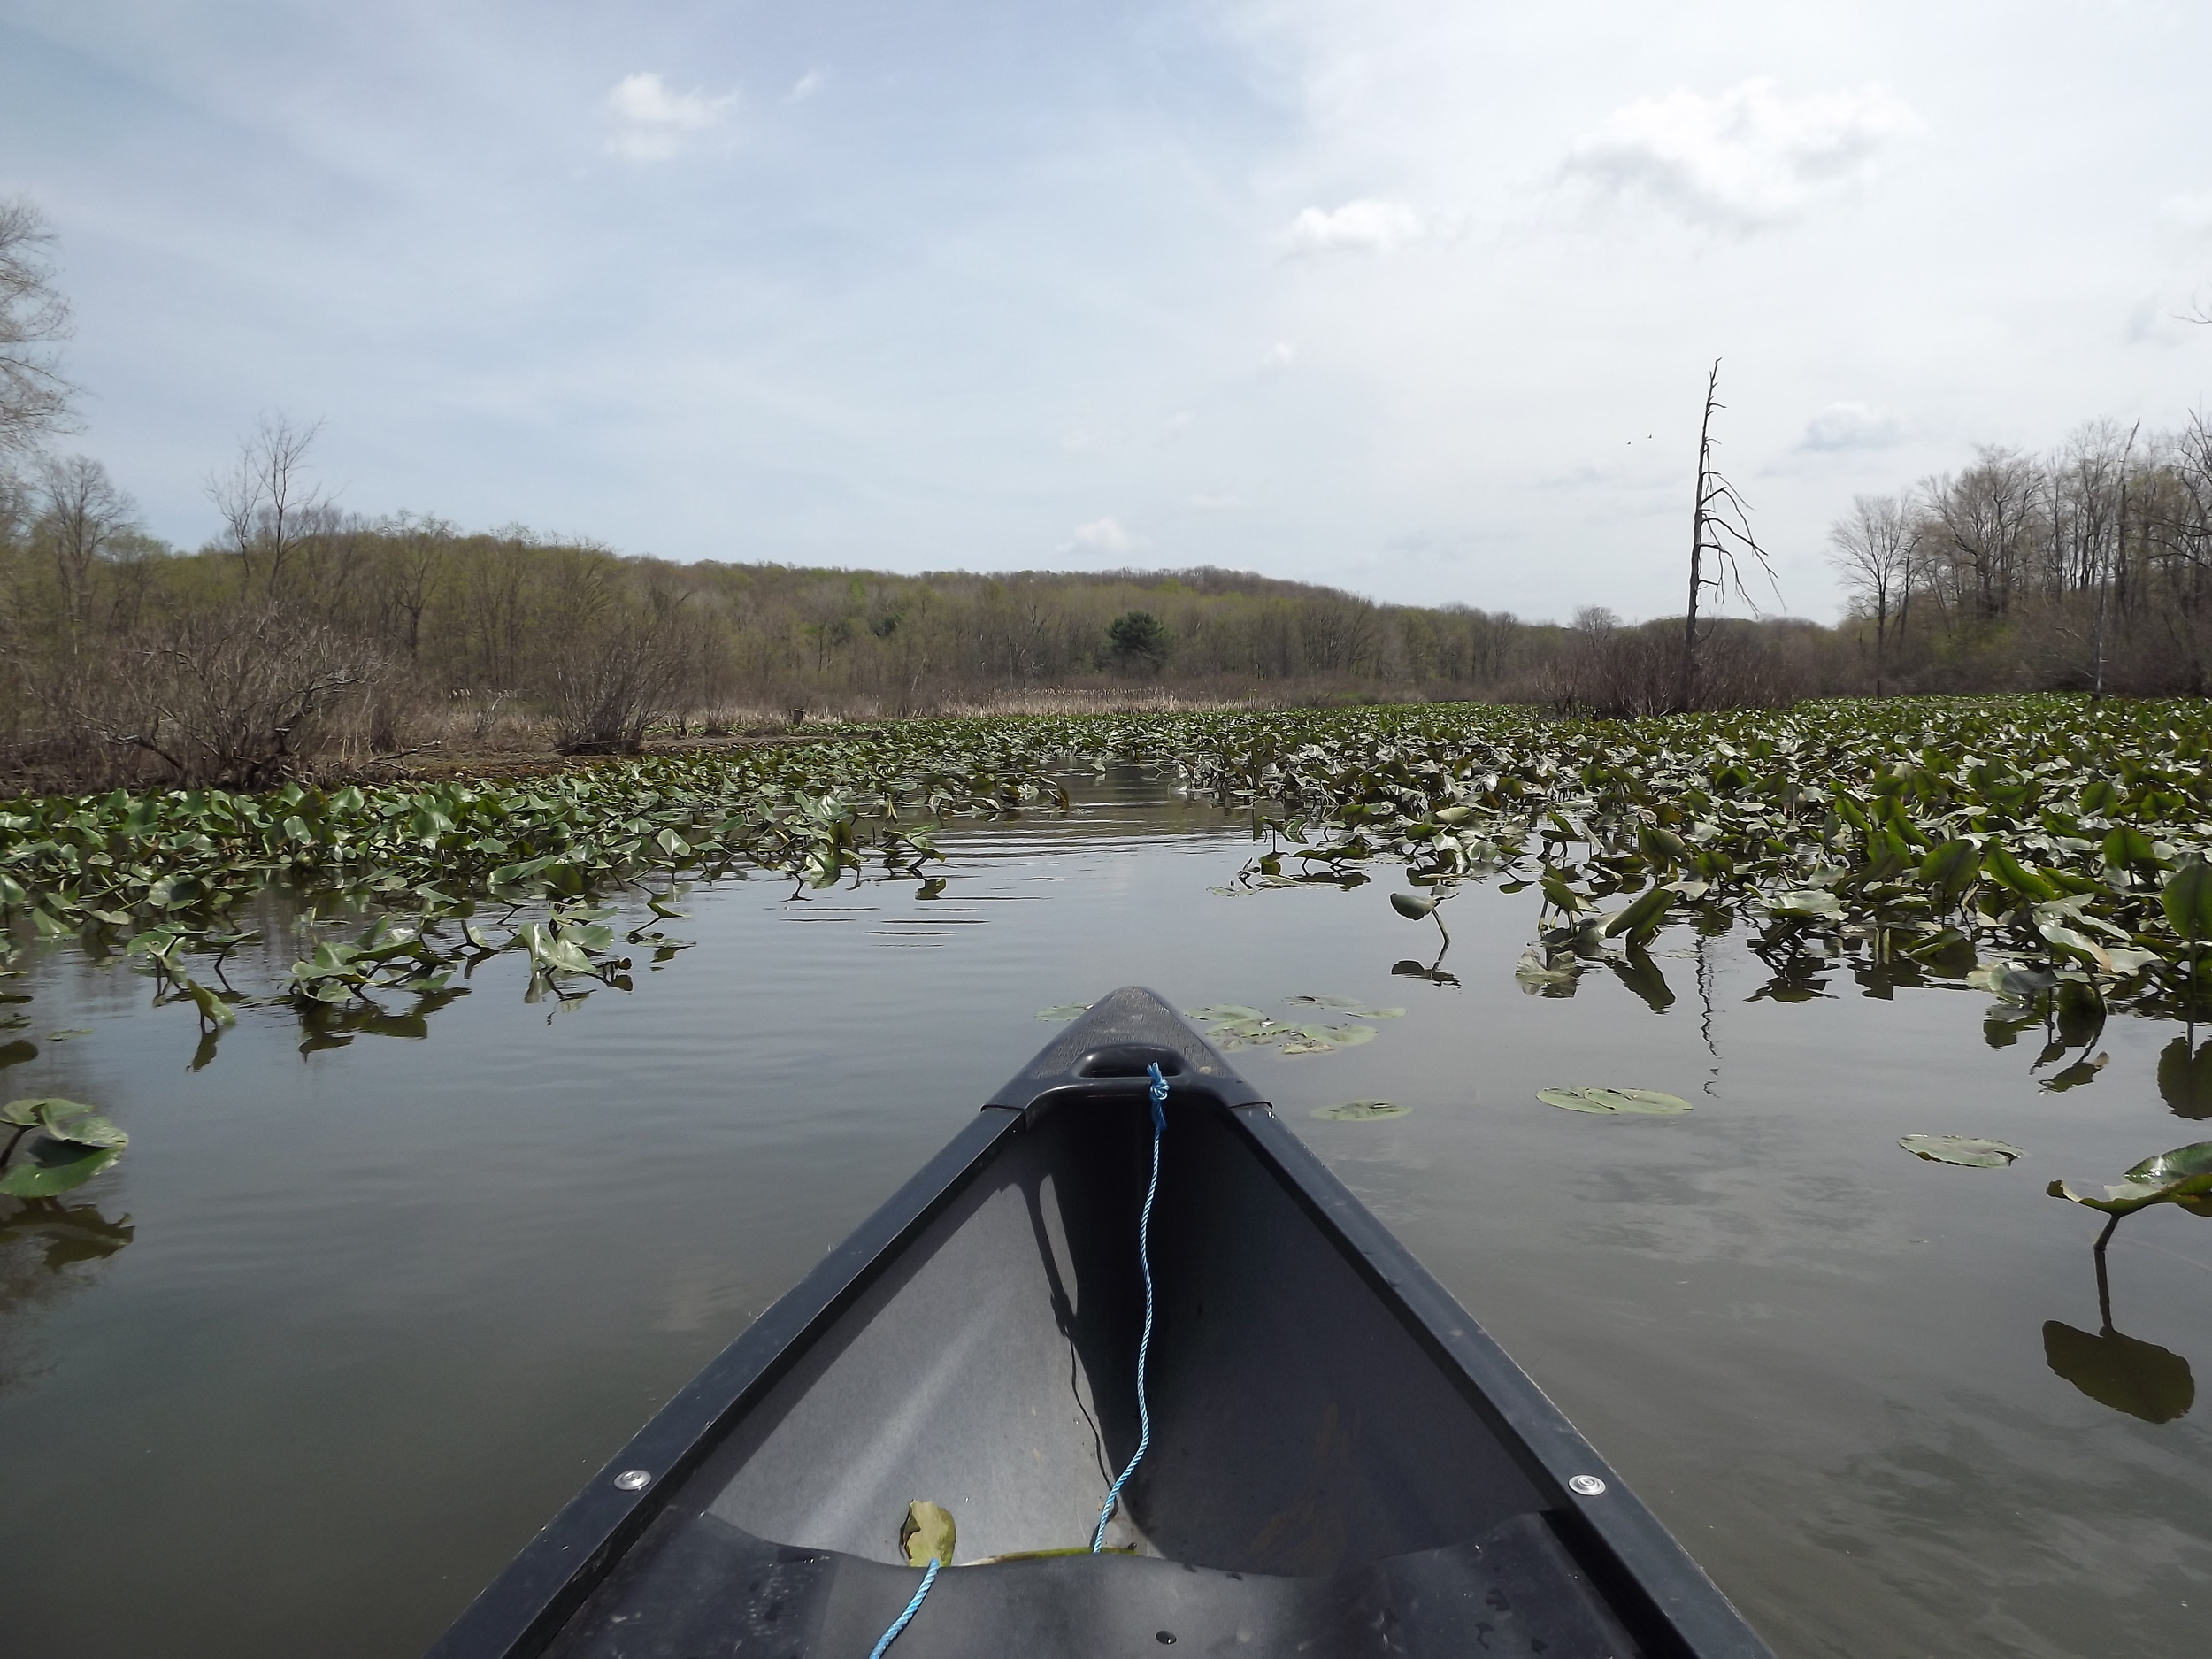 After portaging my canoe around the dam, we continued further into a swampy area.  The paddling was slow, but the lily pads weren't so dense we couldn't get through the first 100 yards or so.